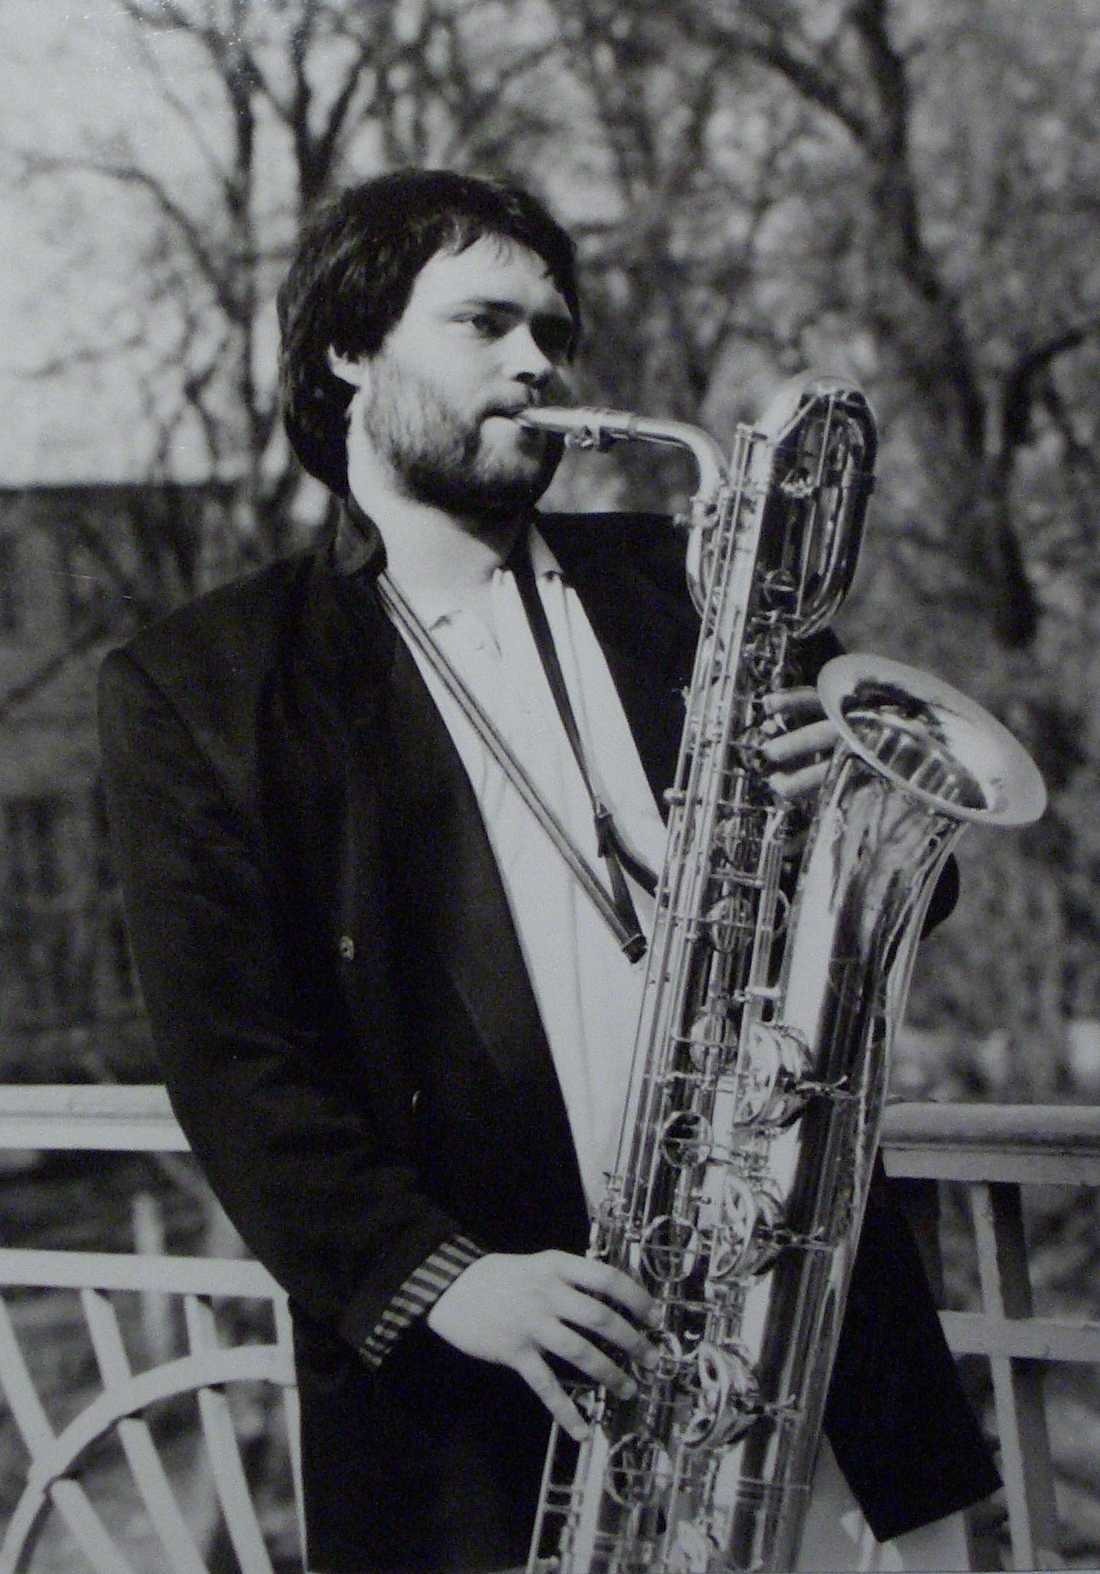 Fred Bayer's sax page